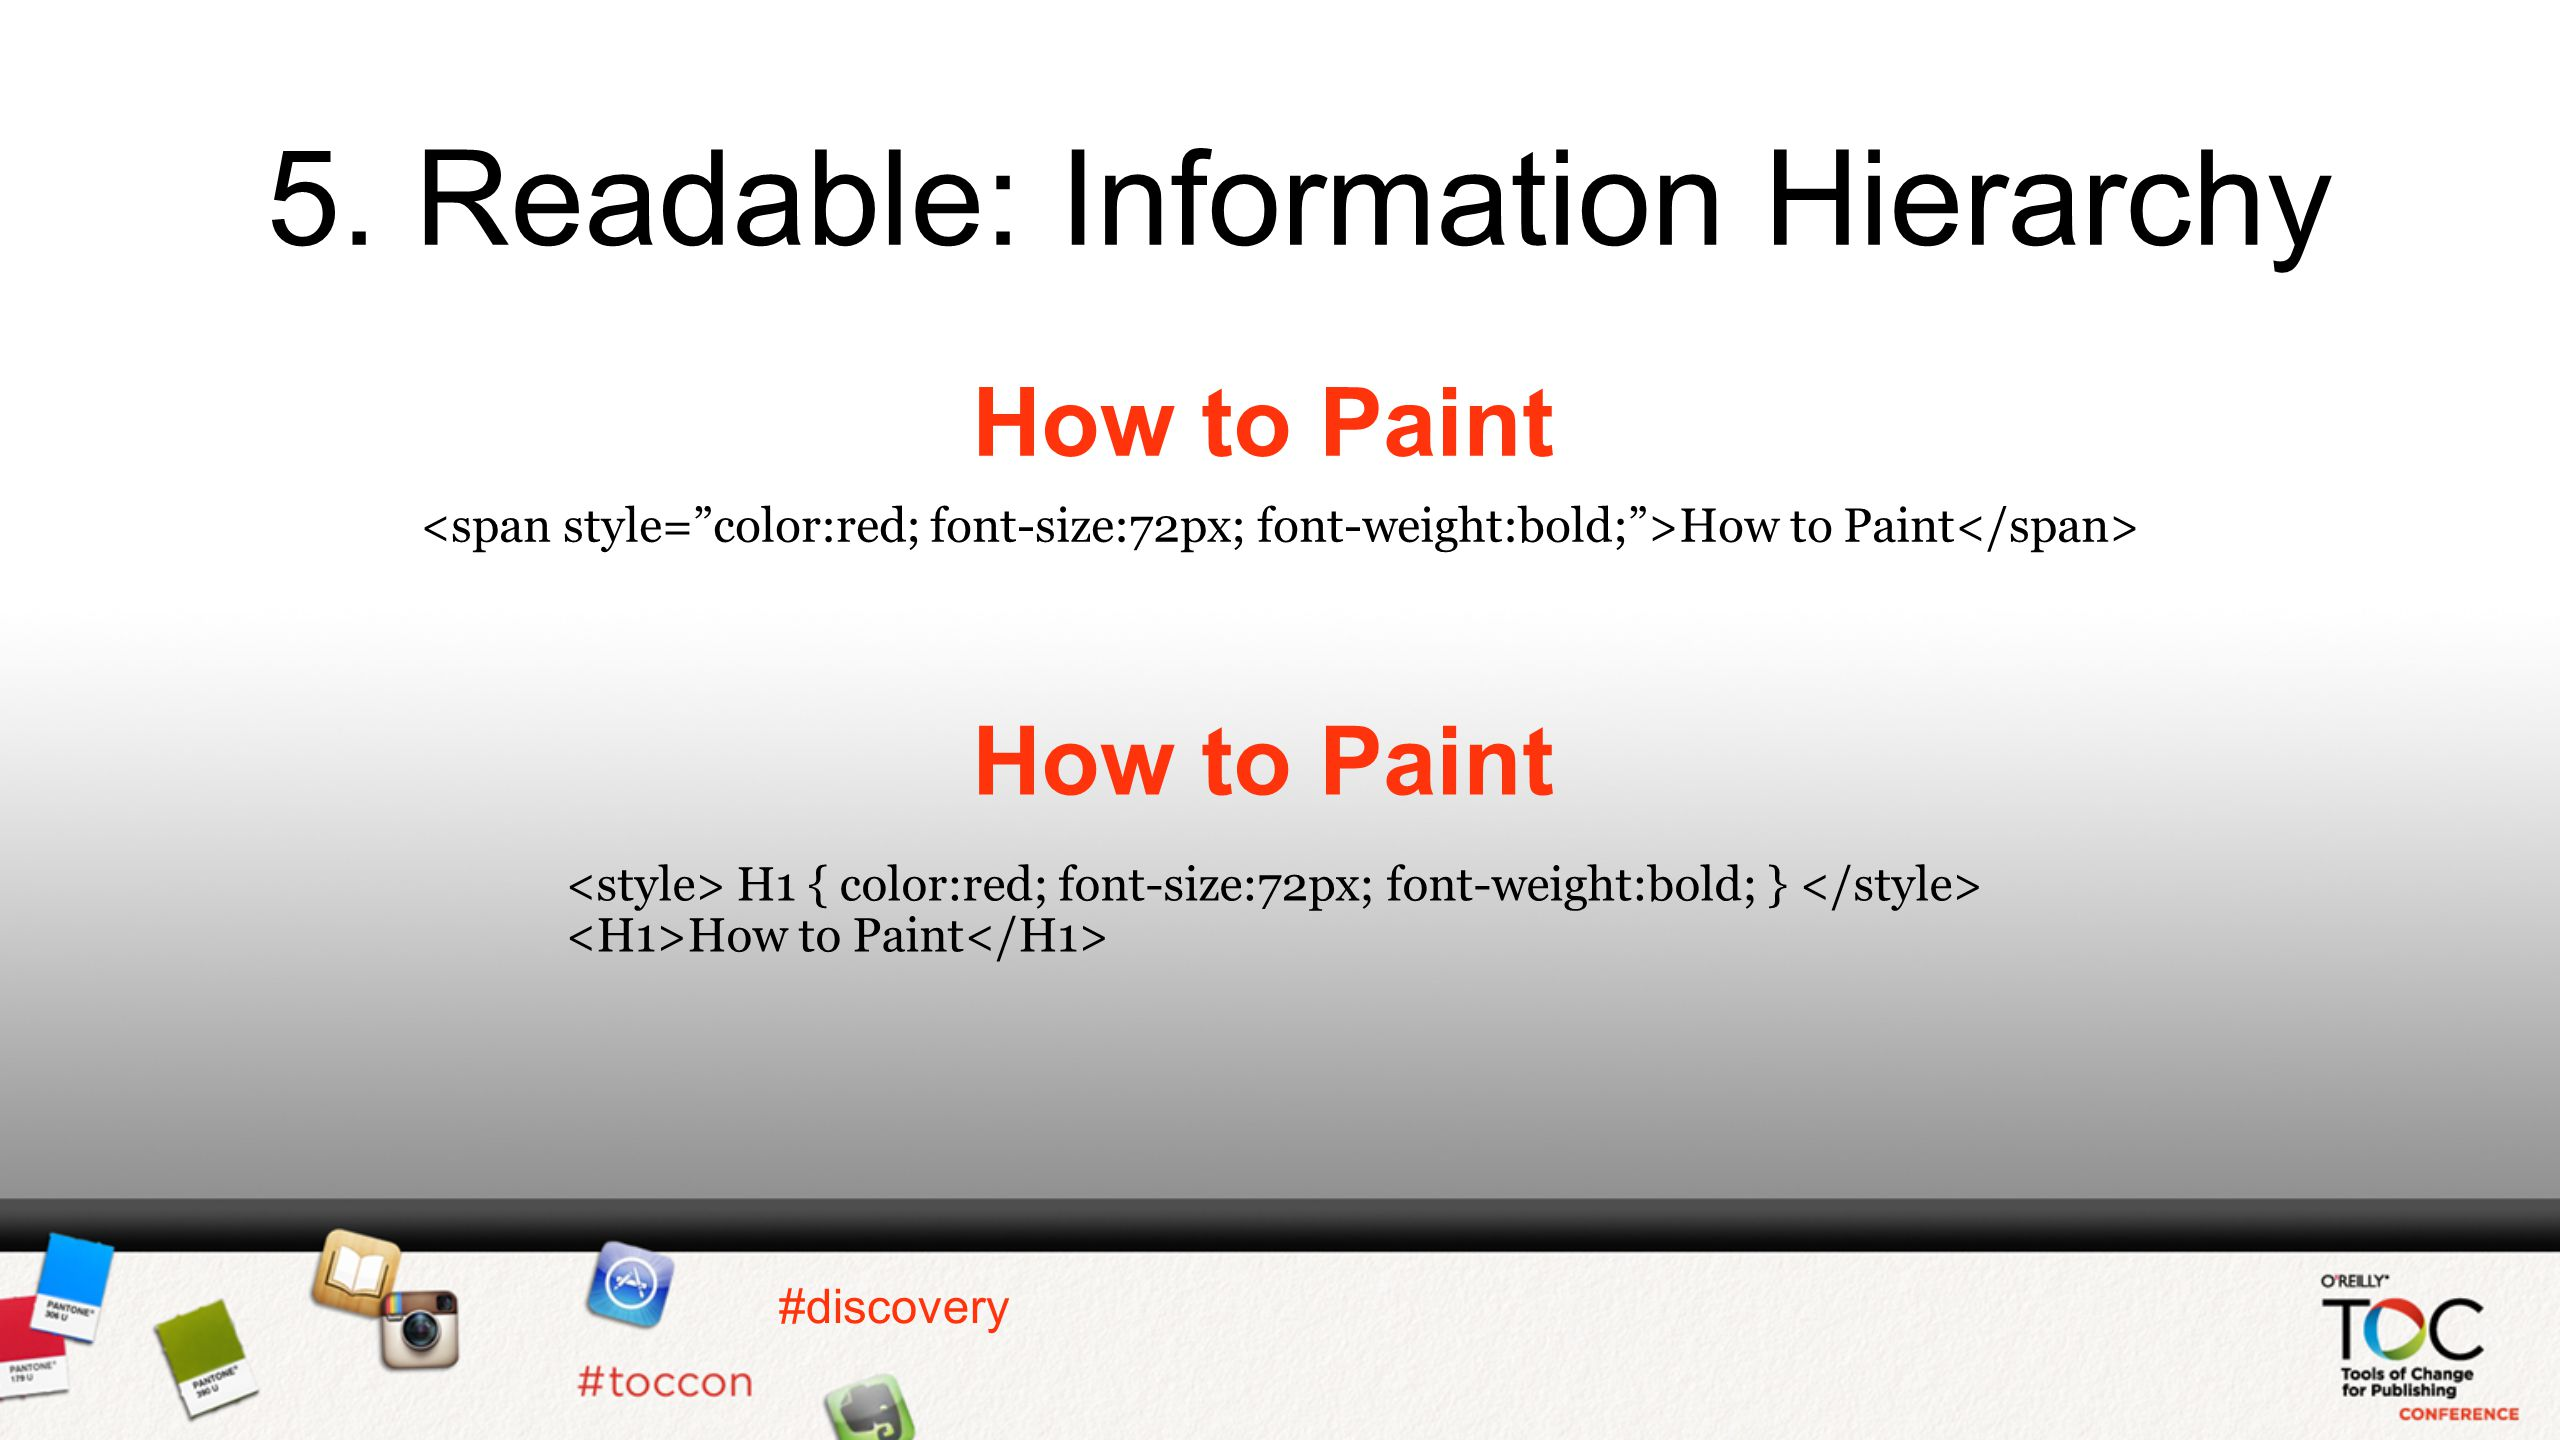 #discovery 5. Readable: Information Hierarchy How to Paint H1 { color:red; font-size:72px; font-weight:bold; } How to Paint